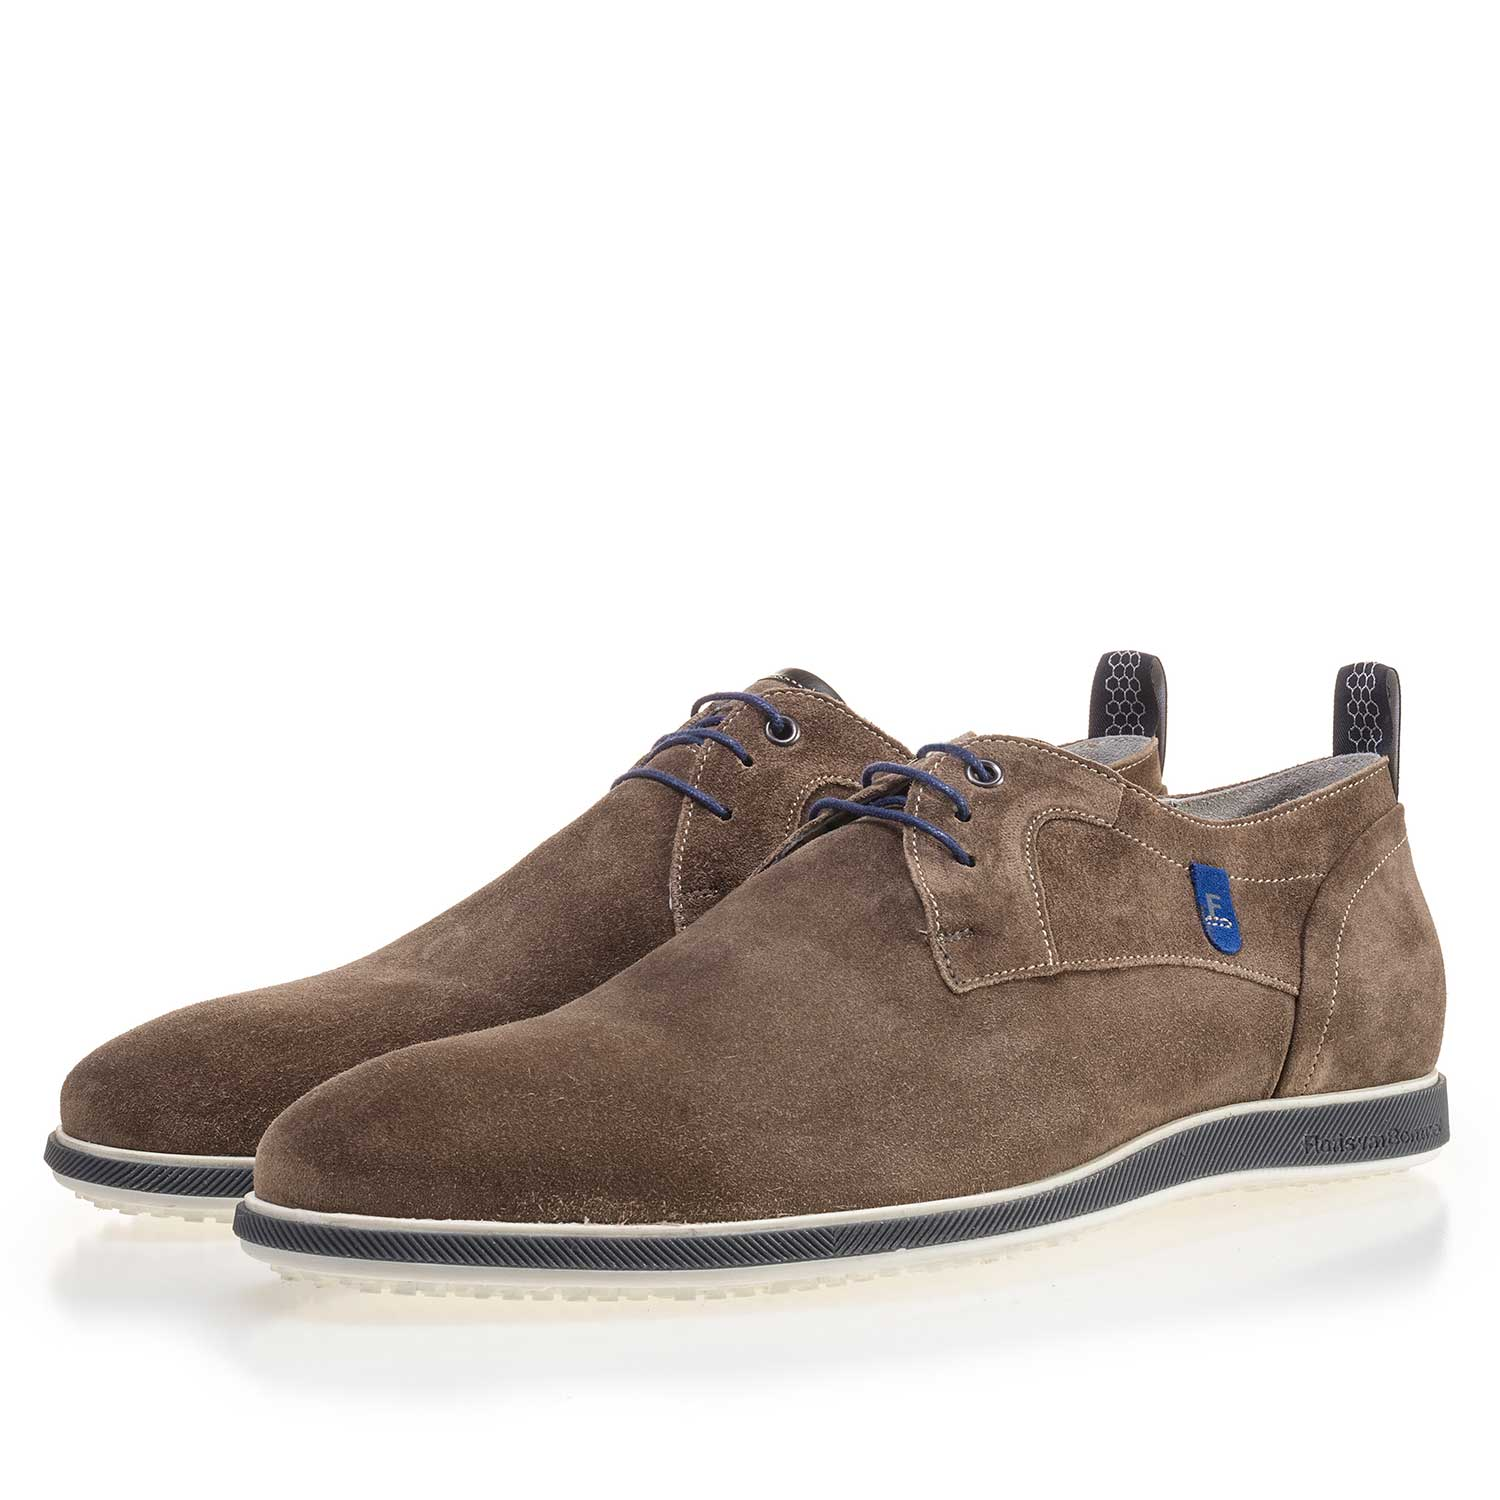 14076/01 - Taupe-coloured suede leather lace shoe